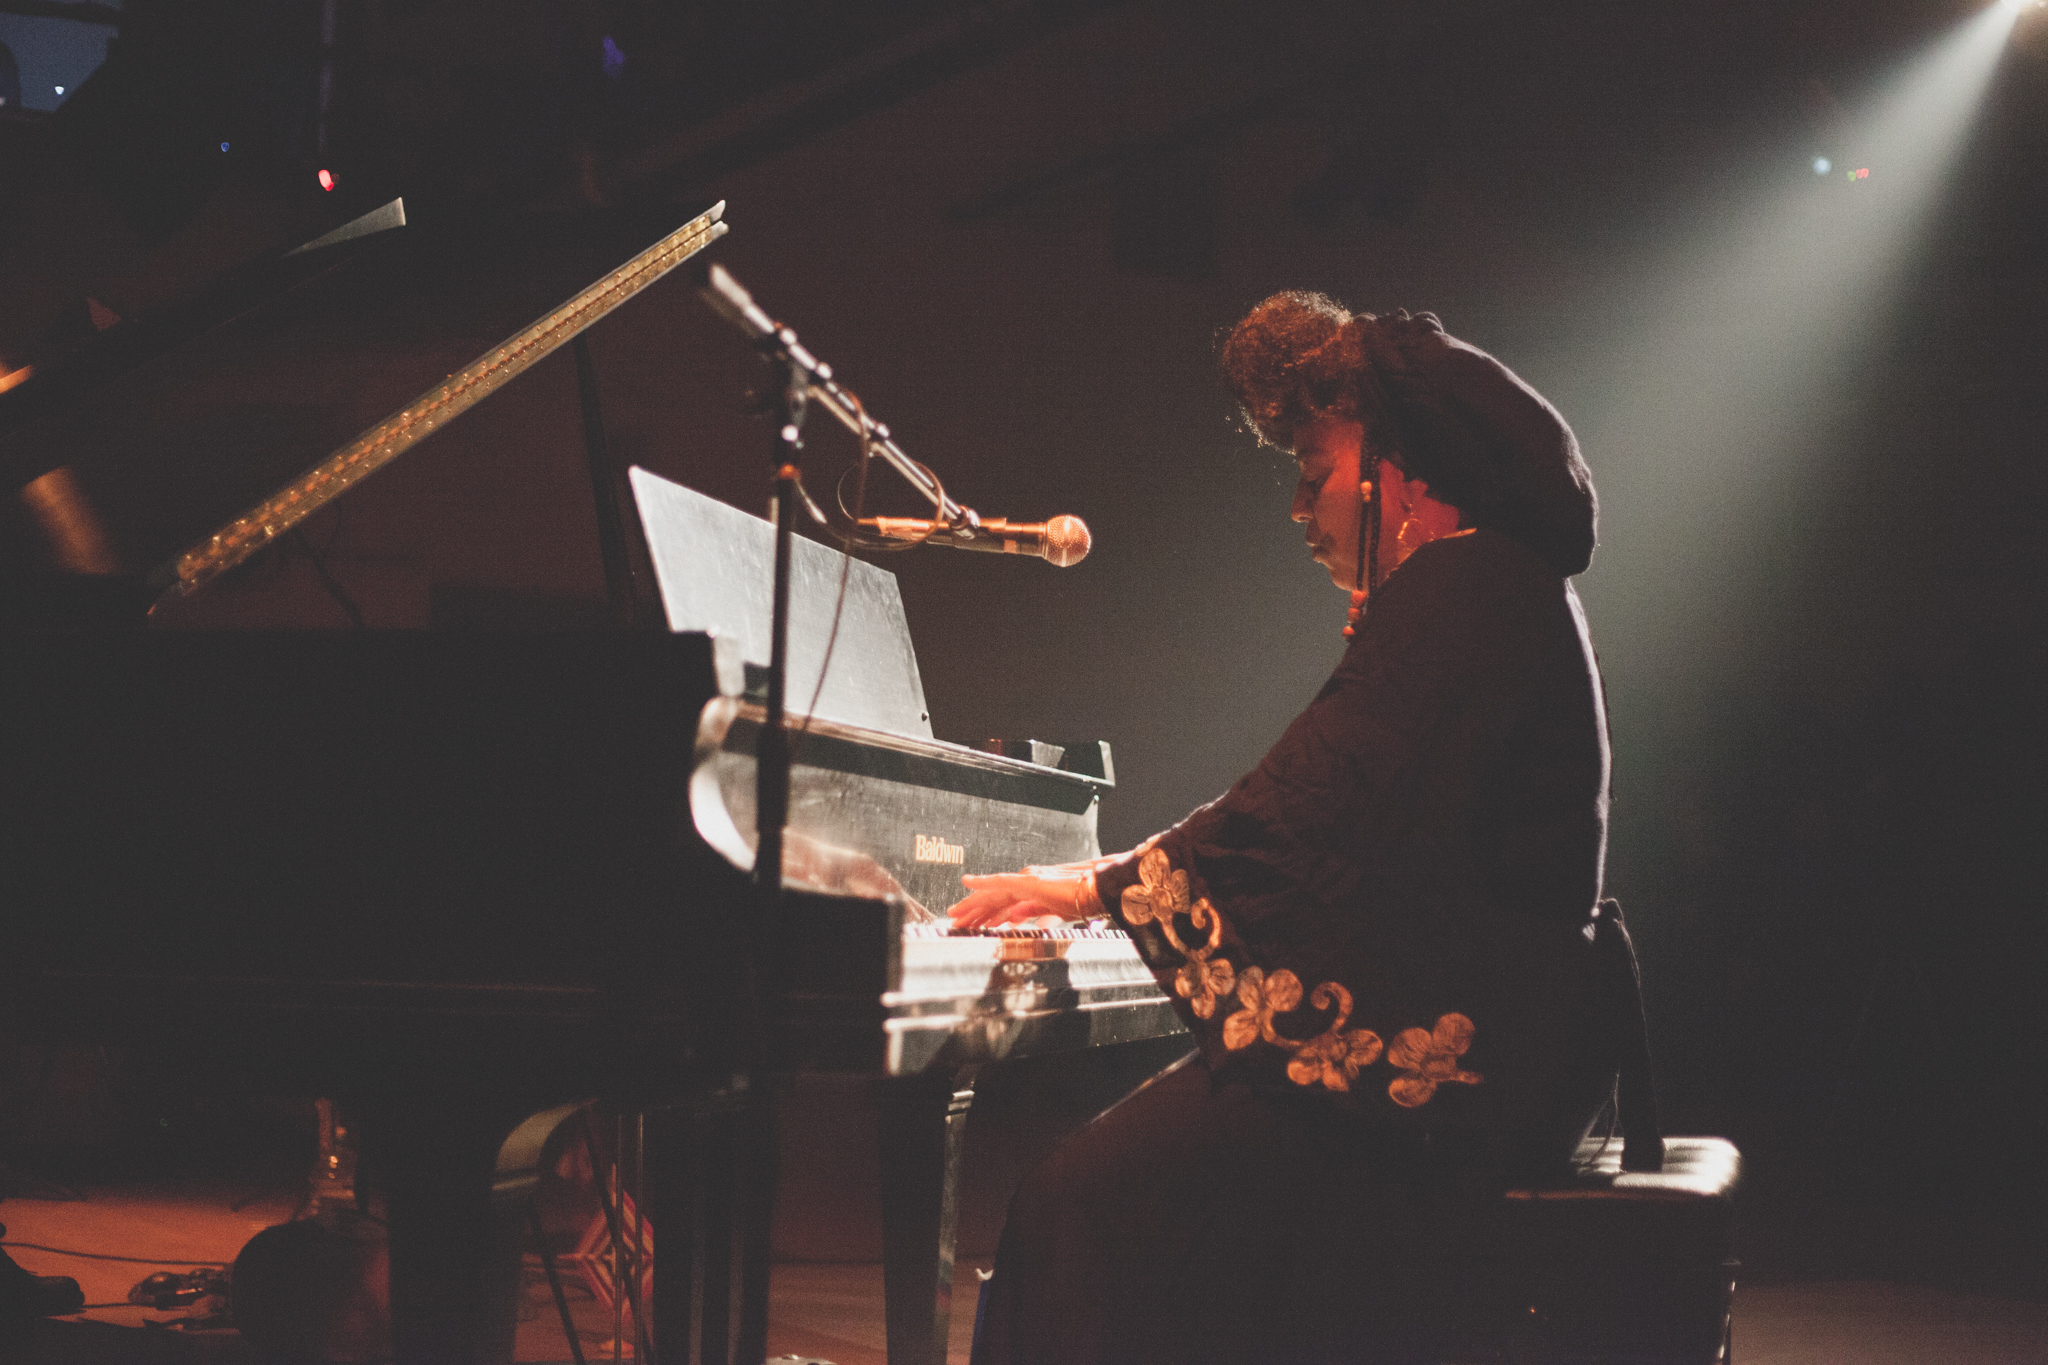 Emelda Lawson Bekkal plays the gran piano during the ECLIPSING performance series at Links Hall. Photo by Ally Almore